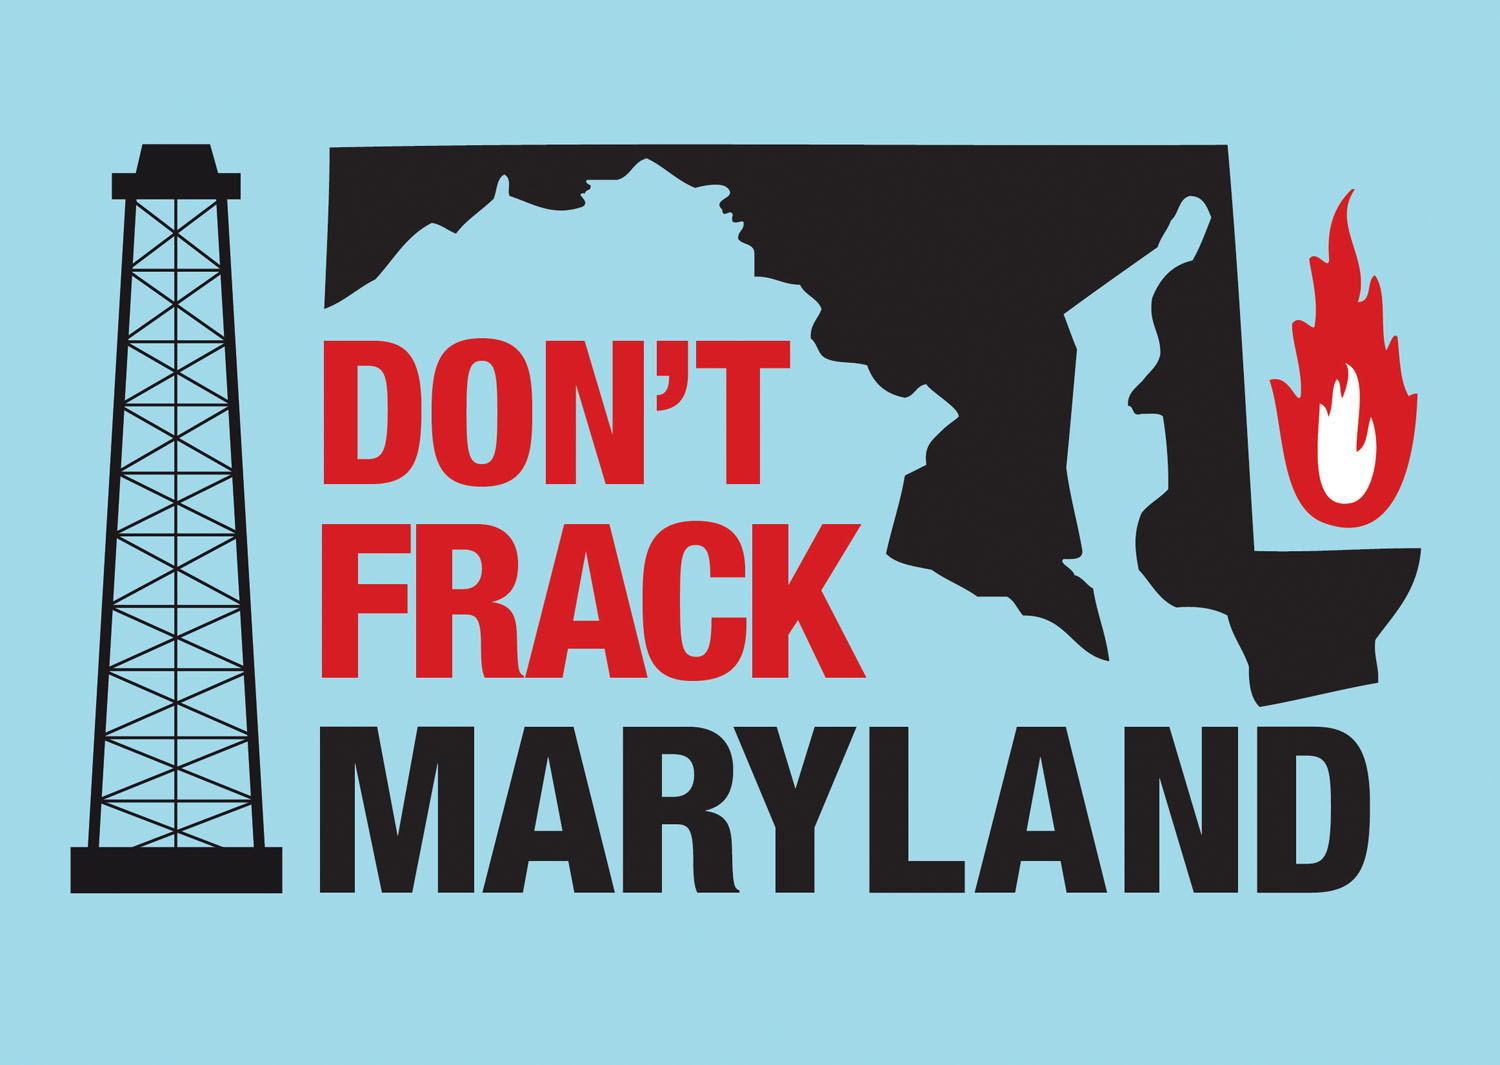 Don_t_frack_maryland_logo